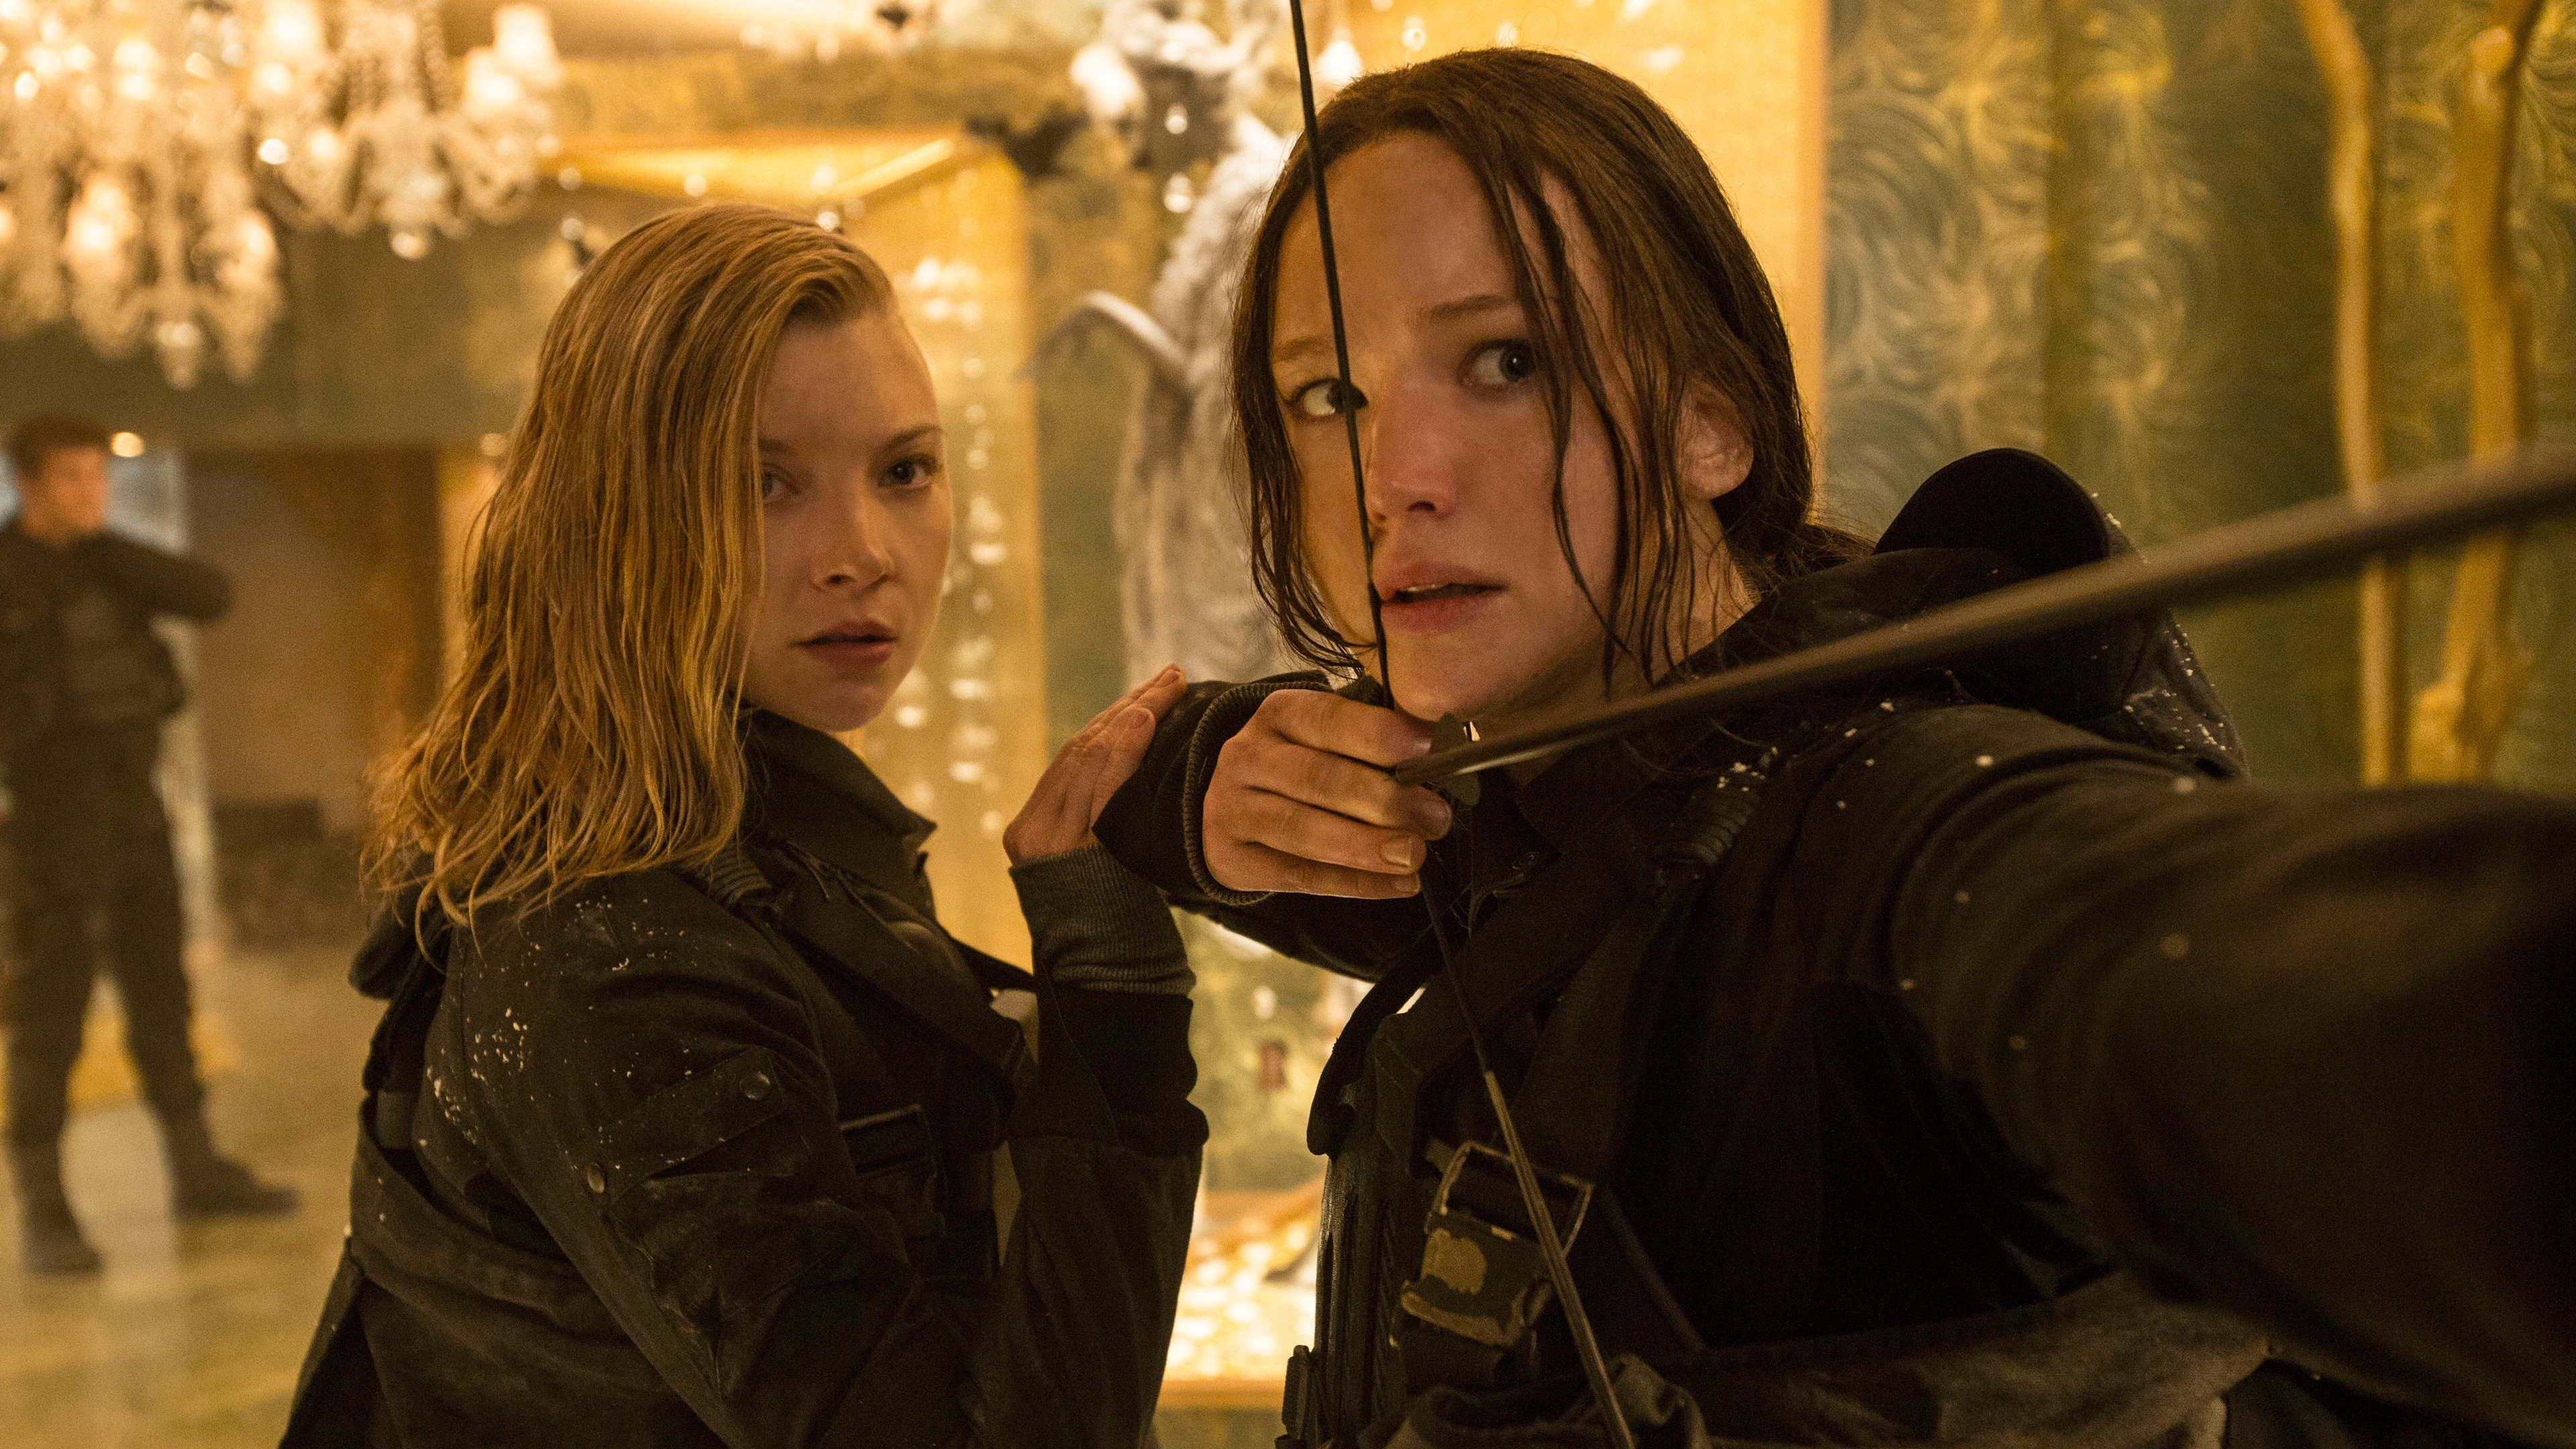 Recensie Hunger Games Mockingjay part 2